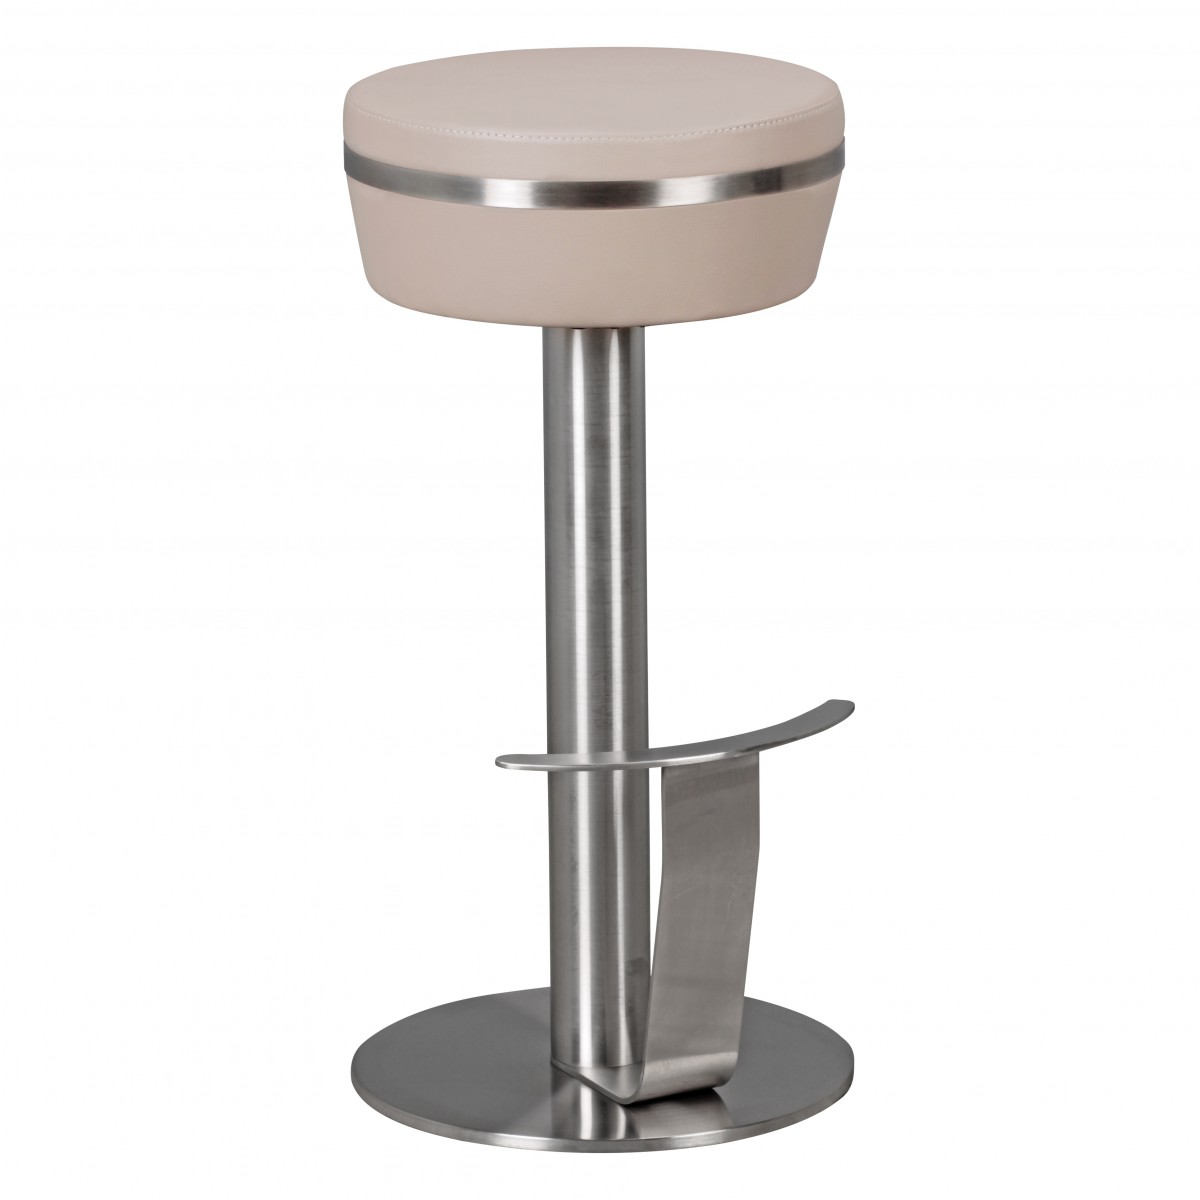 Finebuy Barstool Stainless Steel With Leatherette Seat